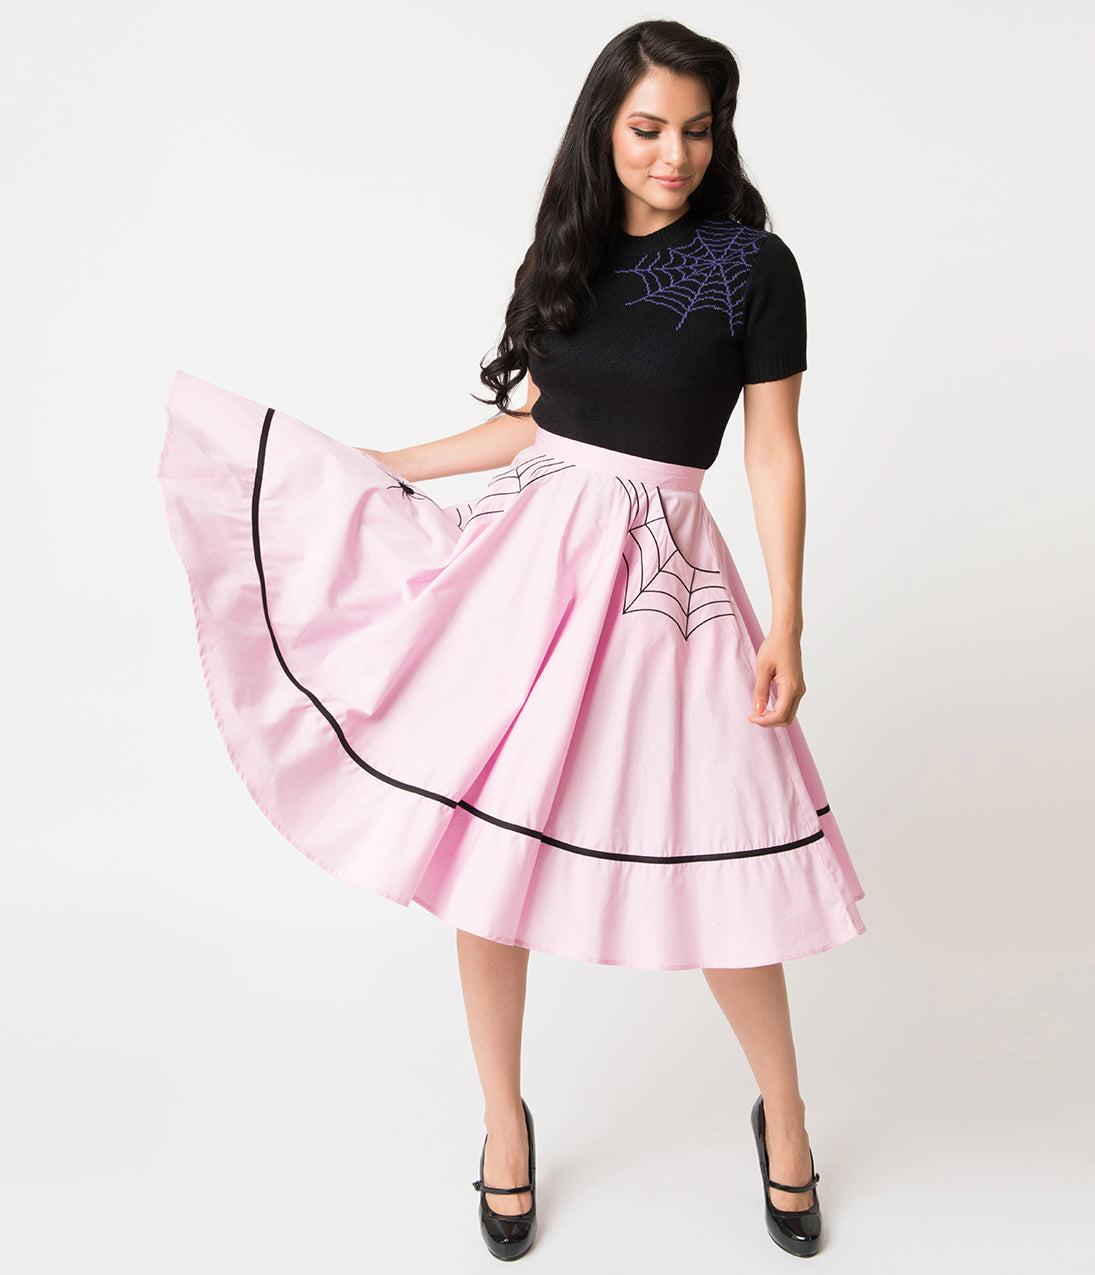 1950s Swing Skirt, Poodle Skirt, Pencil Skirts Hell Bunny 1950S Style Pink Miss Muffet Embroidered Swing Skirt $62.00 AT vintagedancer.com